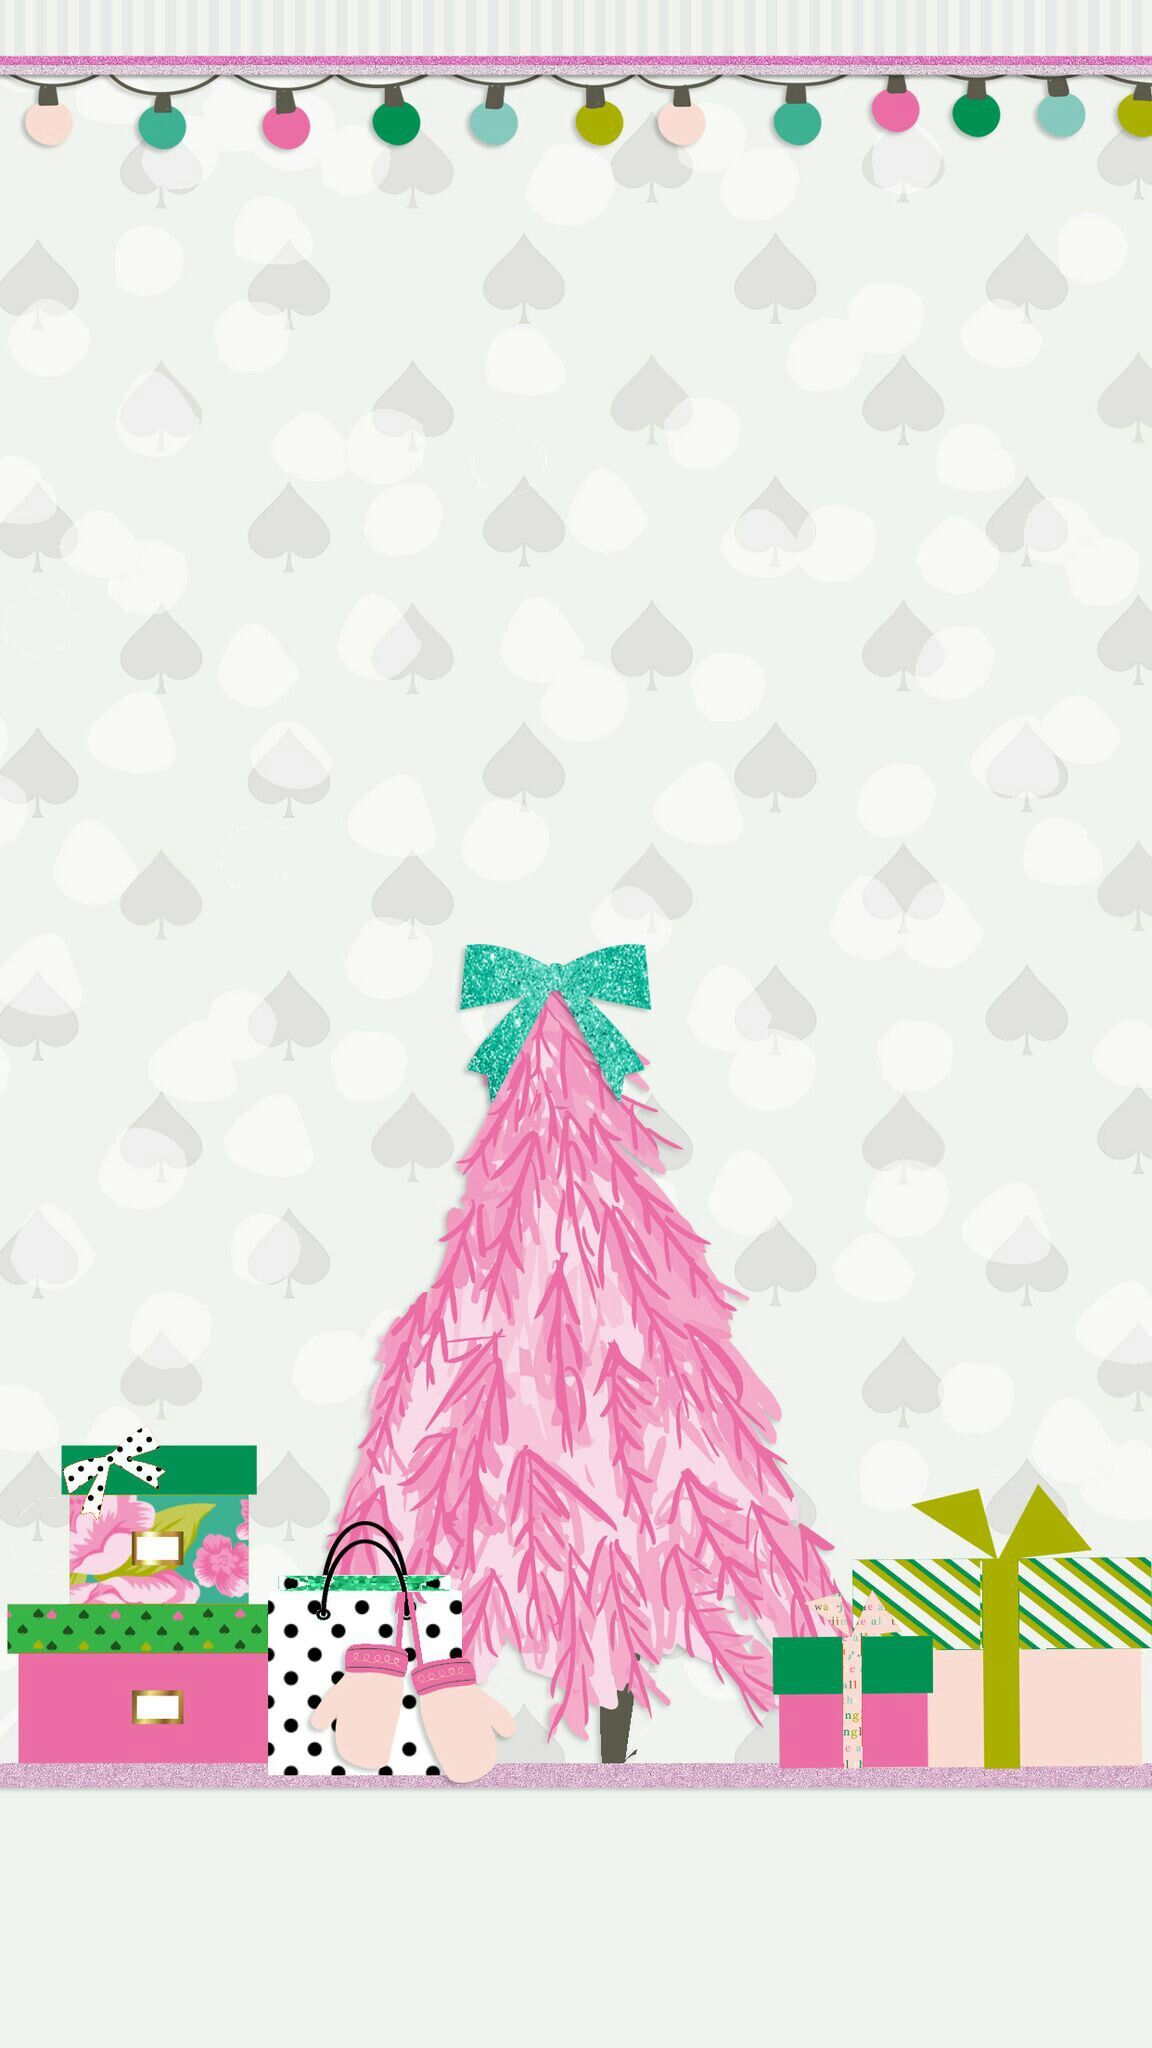 iPhone Wall: Christmas tjn | iPhone Walls: Christmas & HNY 2 in 2018 ...